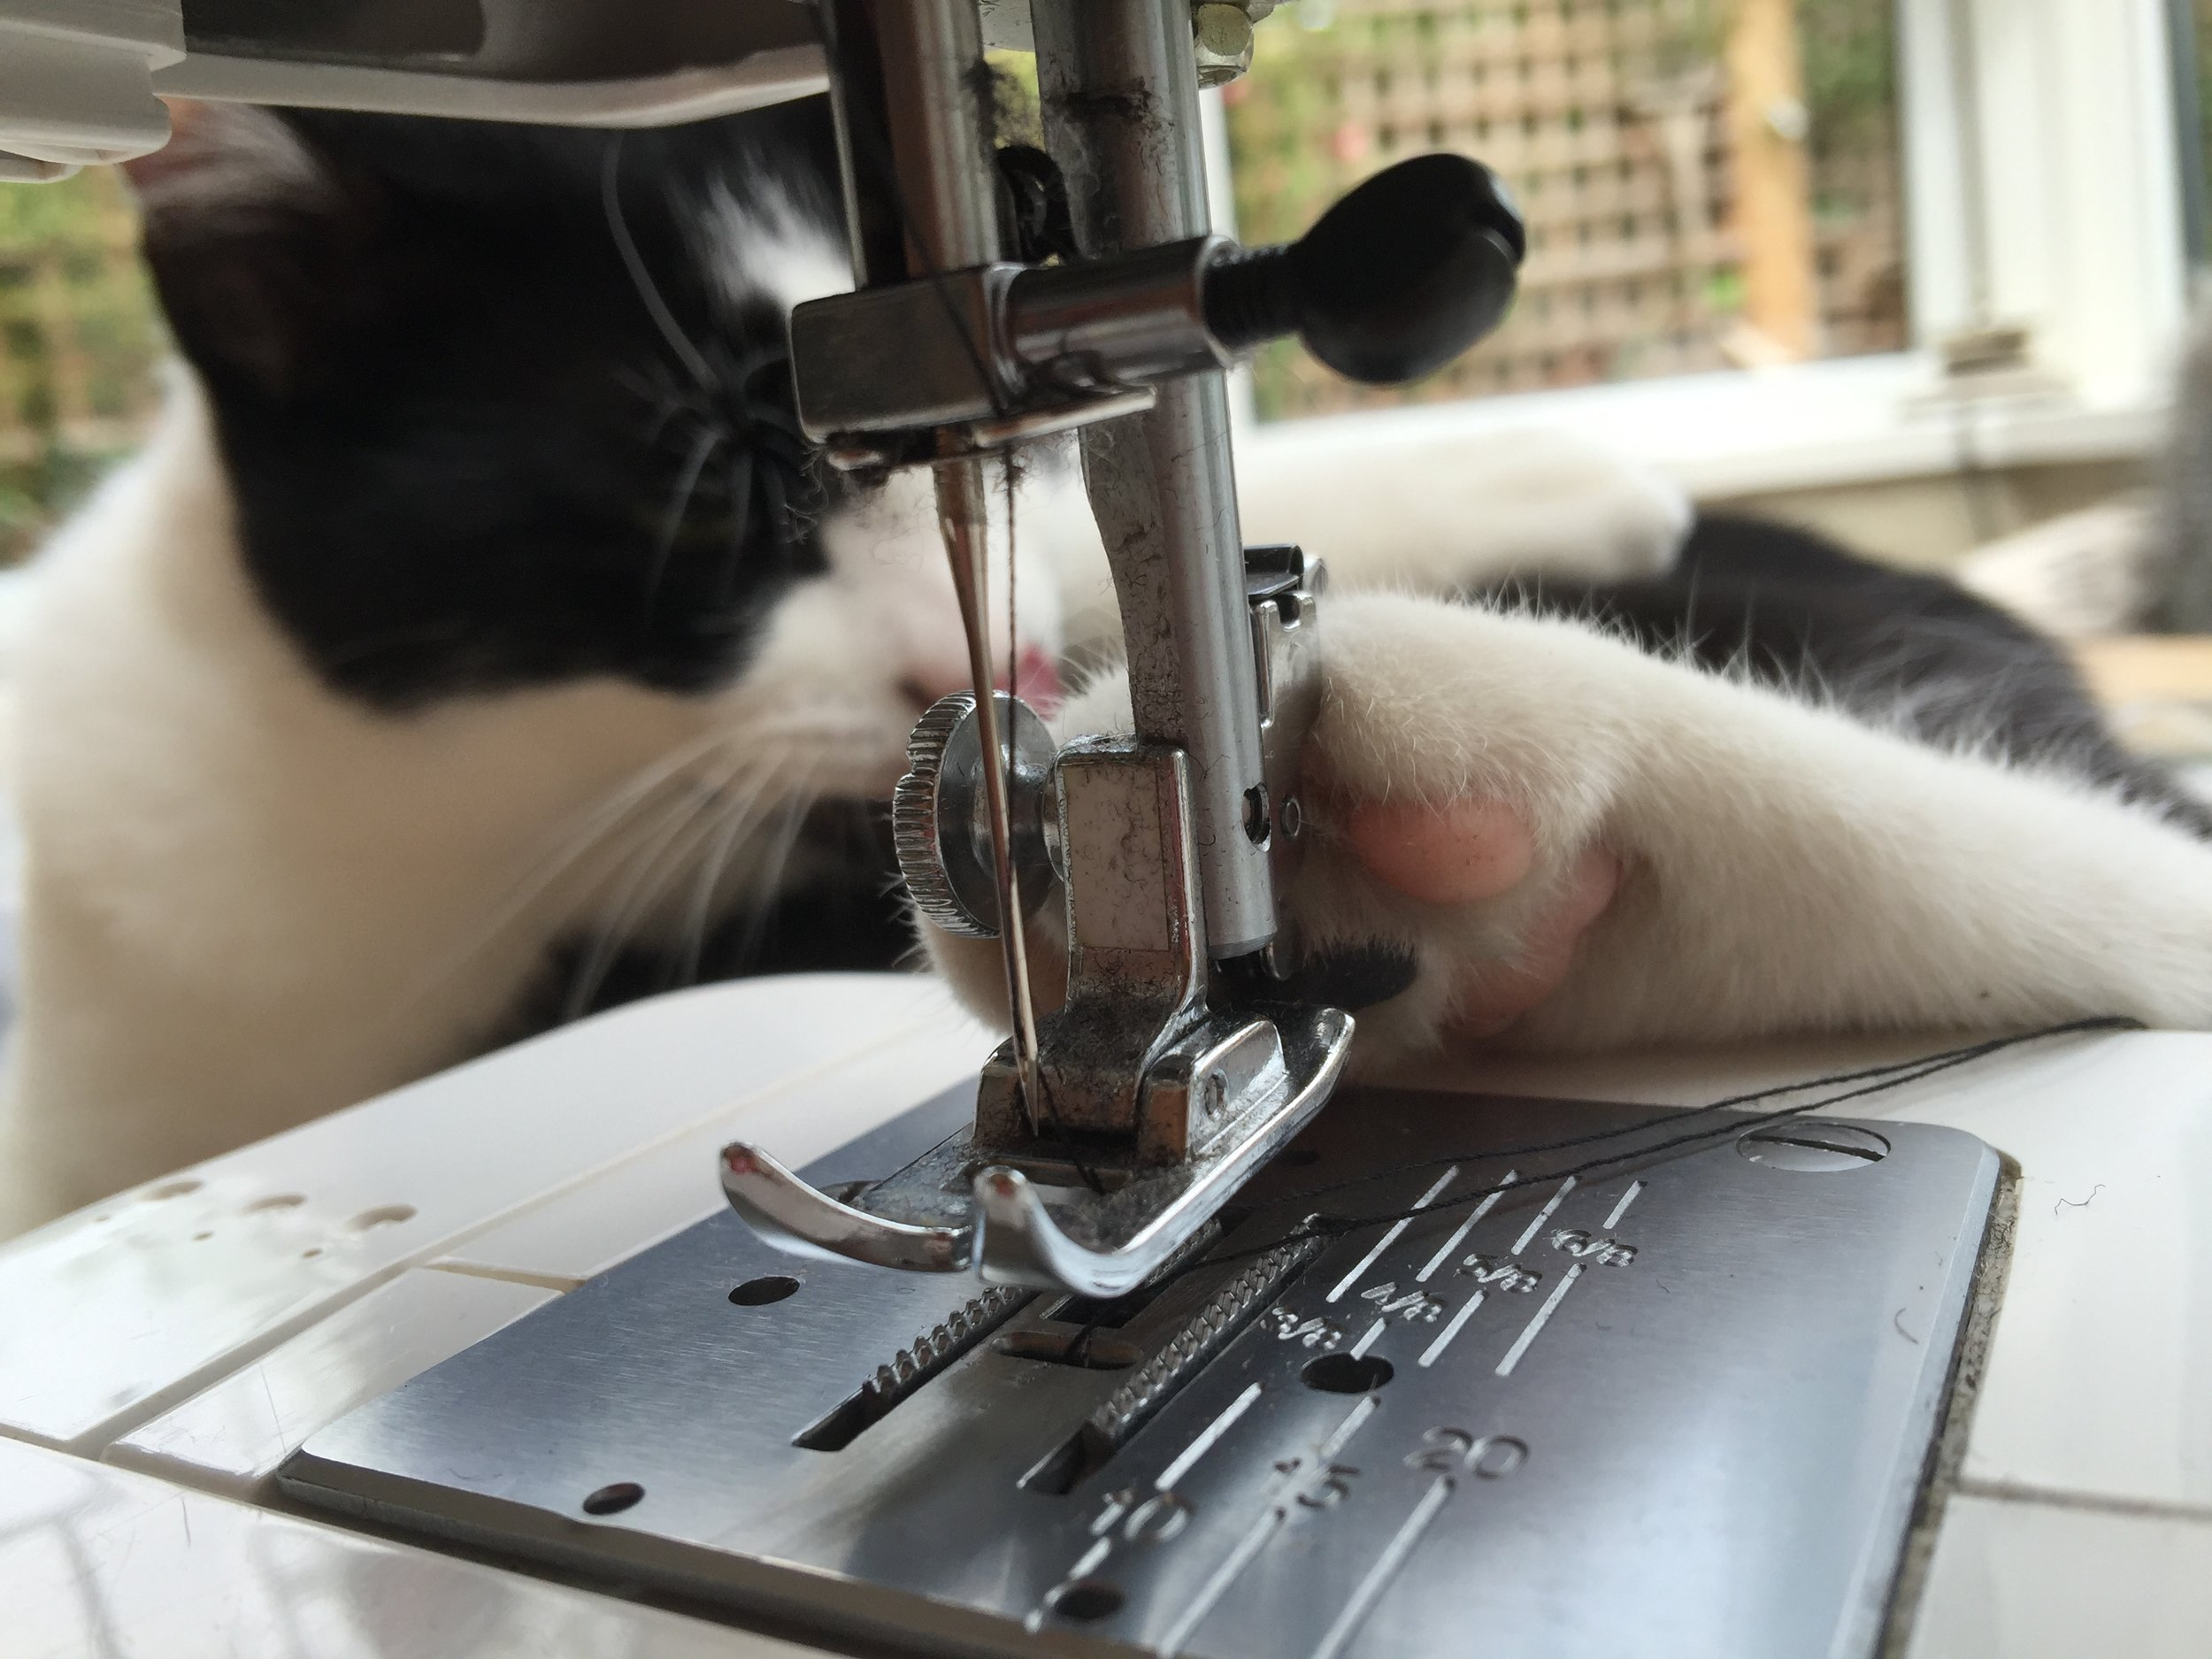 SEWING IN PROGRESS - We're working on a new website